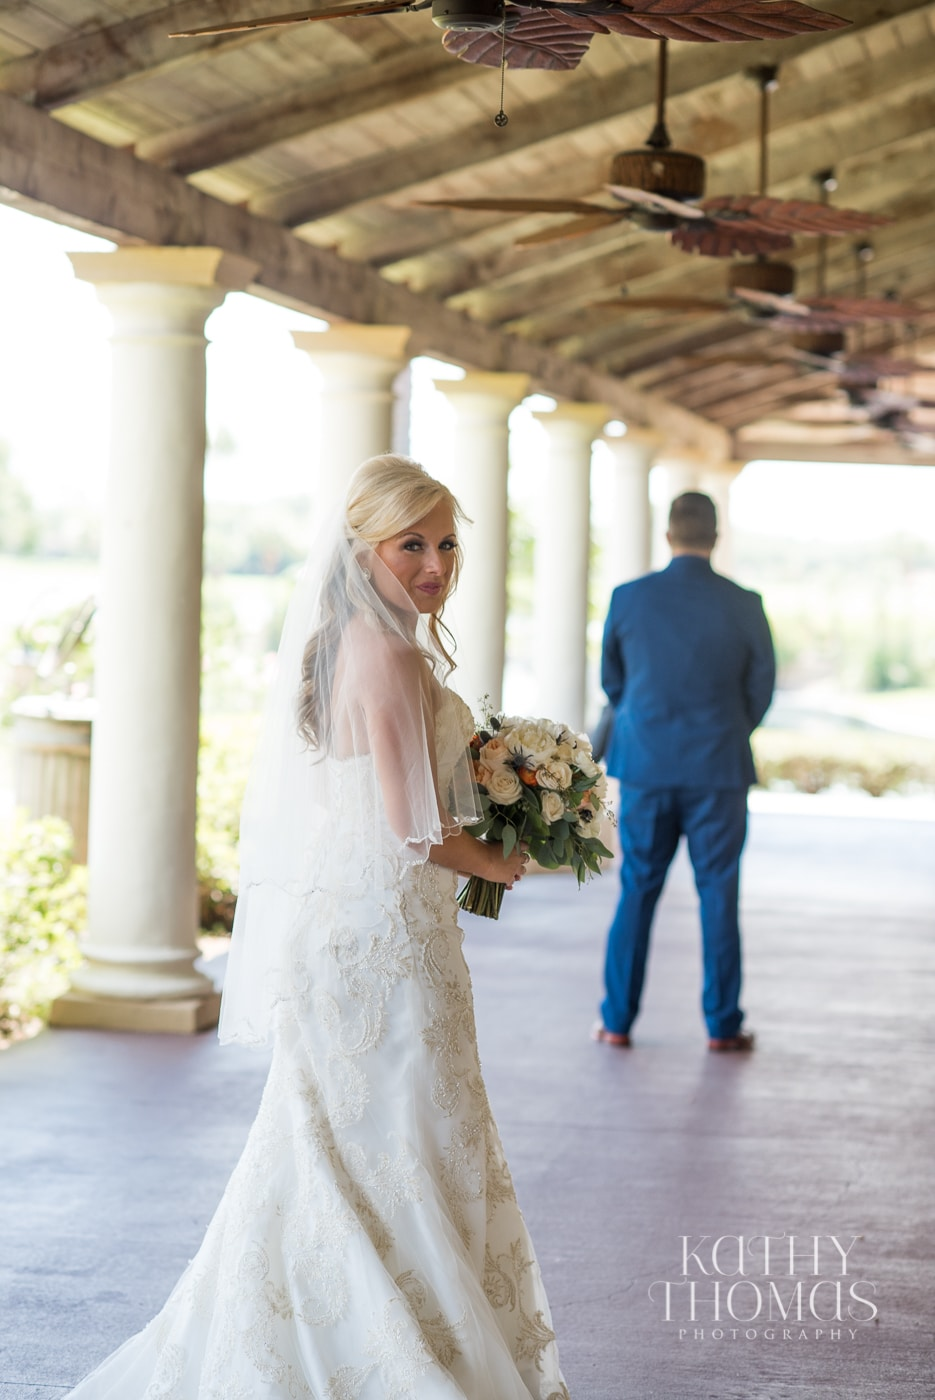 Groom with back turned under porch ceiling, bride glancing behind her as she approaches him